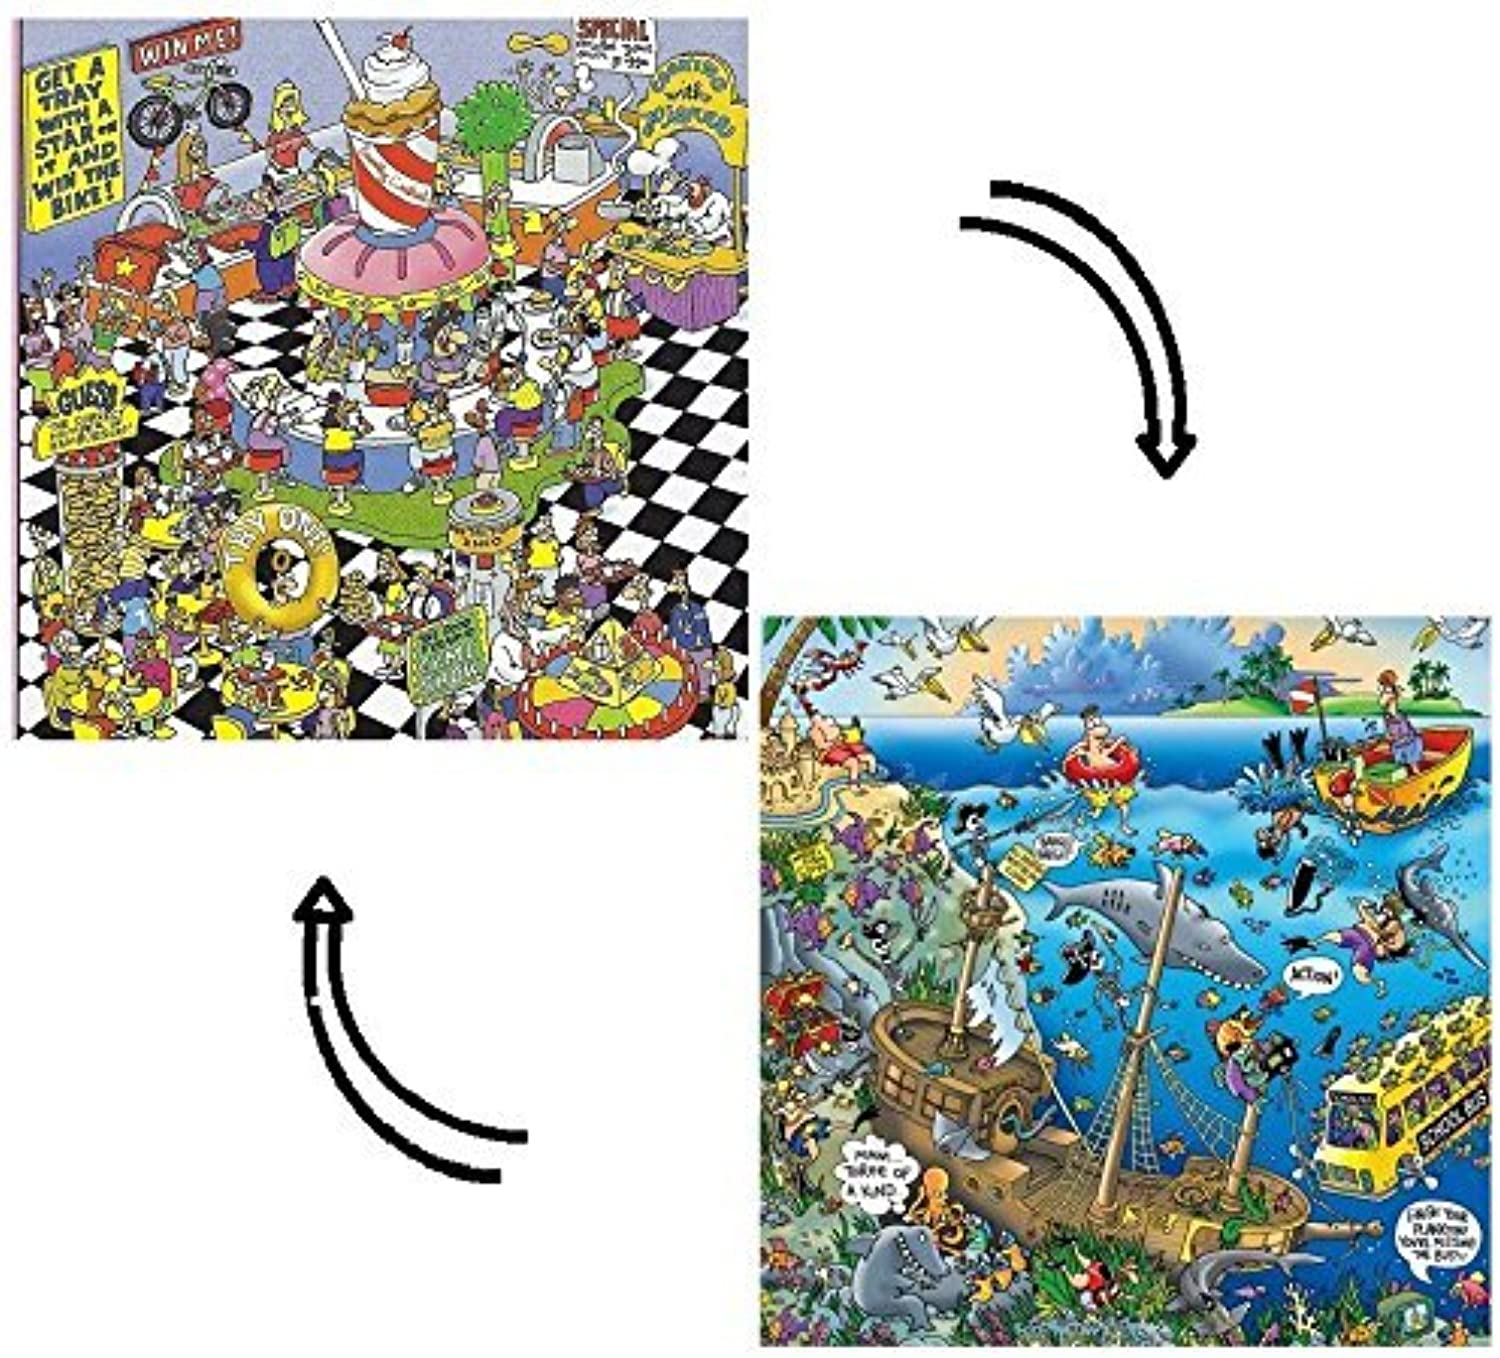 Pieceless Puzzle  School Cafeteria Extreme  and  Sunken Treasure ; 2Sided Jigsaw Puzzle